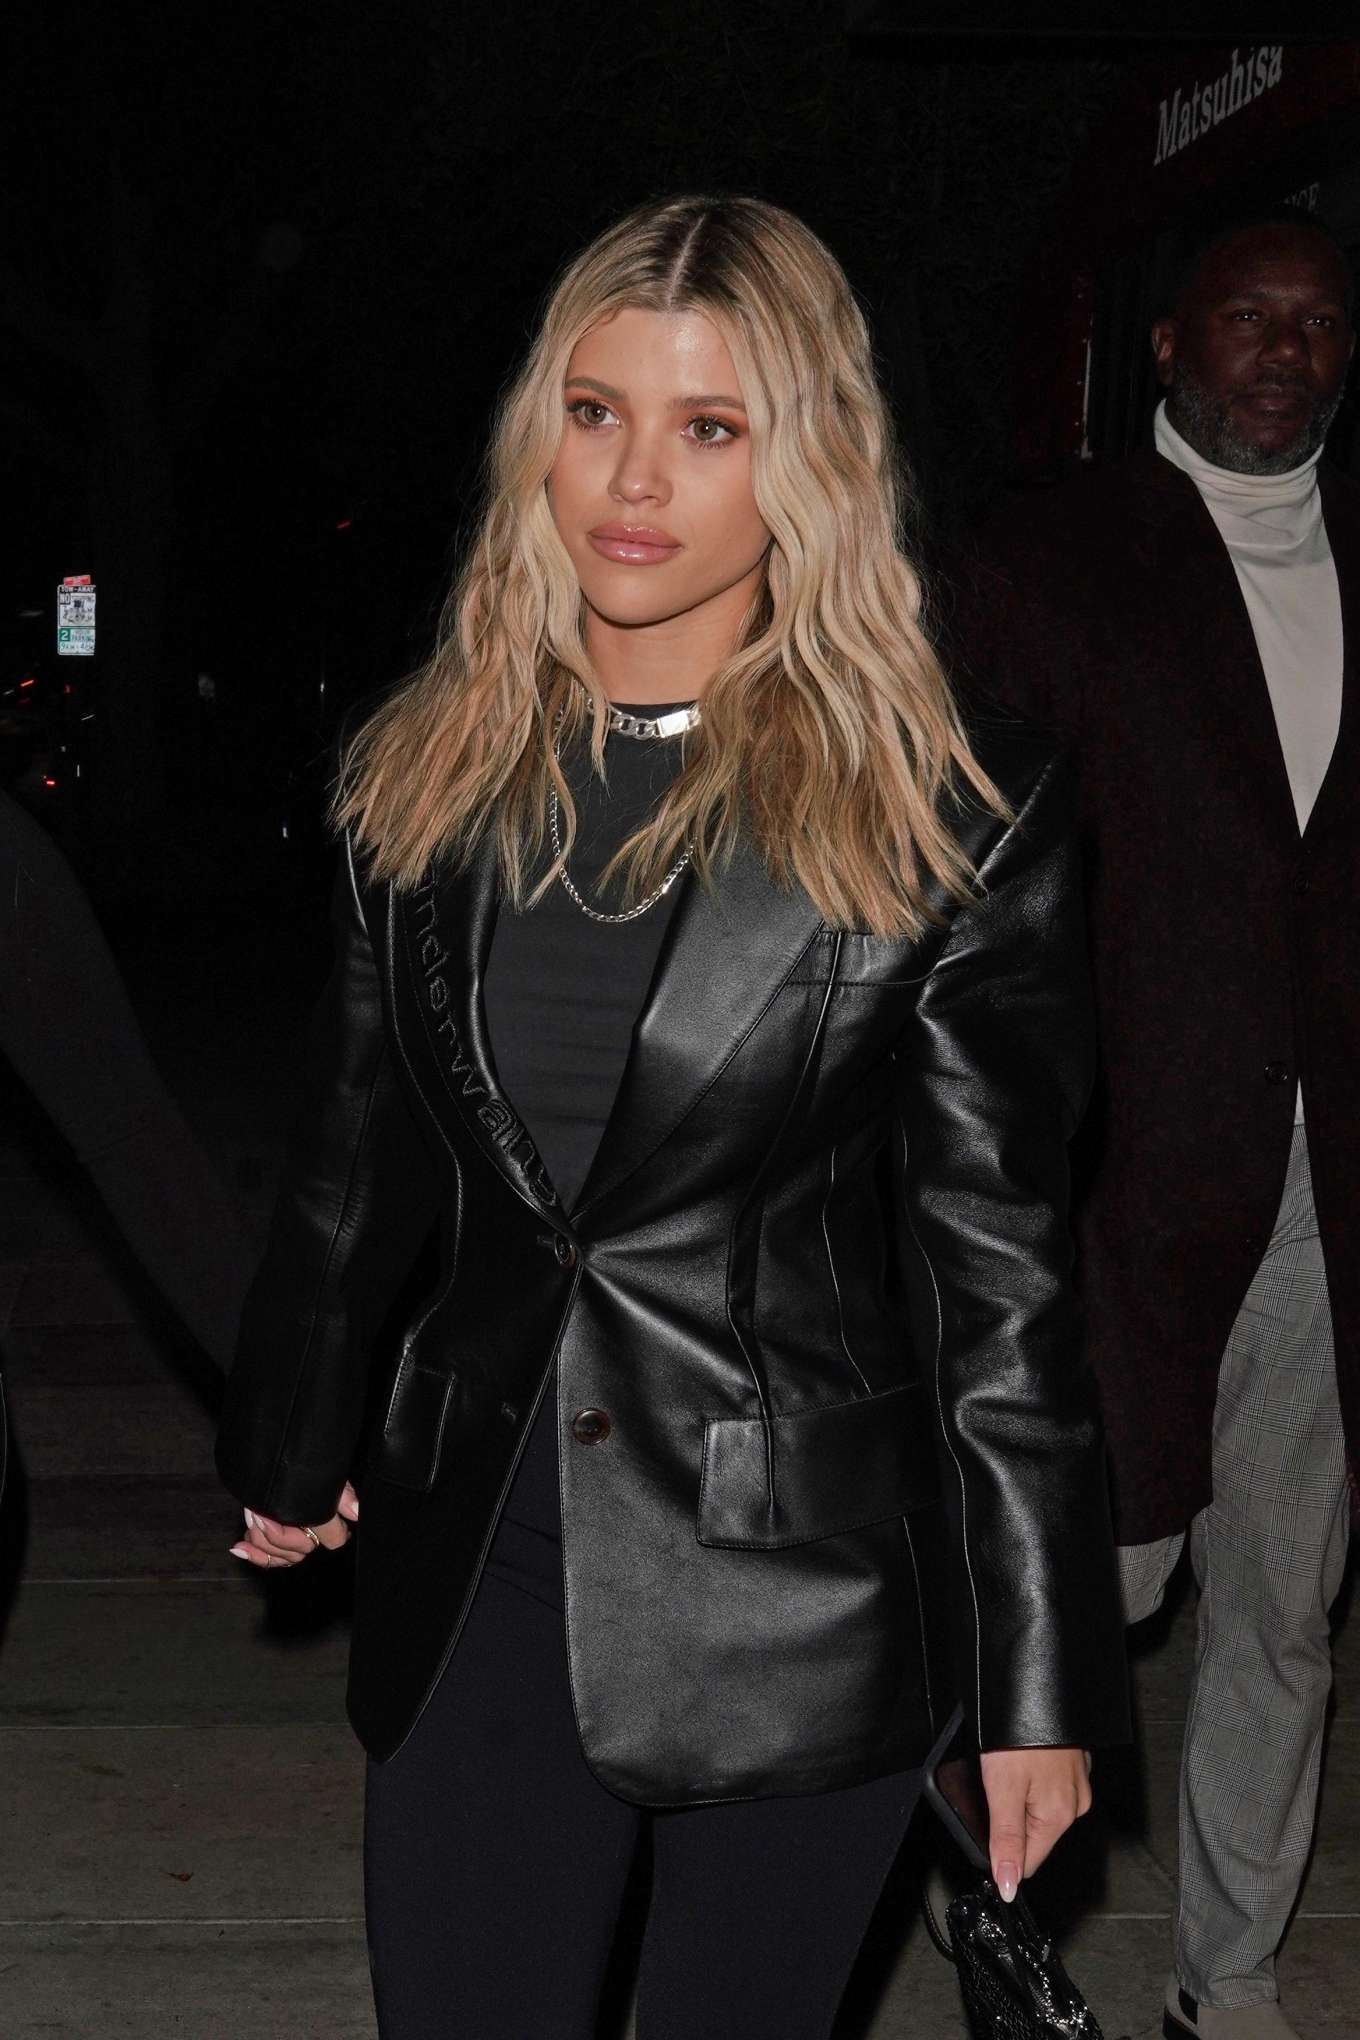 Sofia Richie - Leaving Matsuhisa restaurant in Beverly Hills